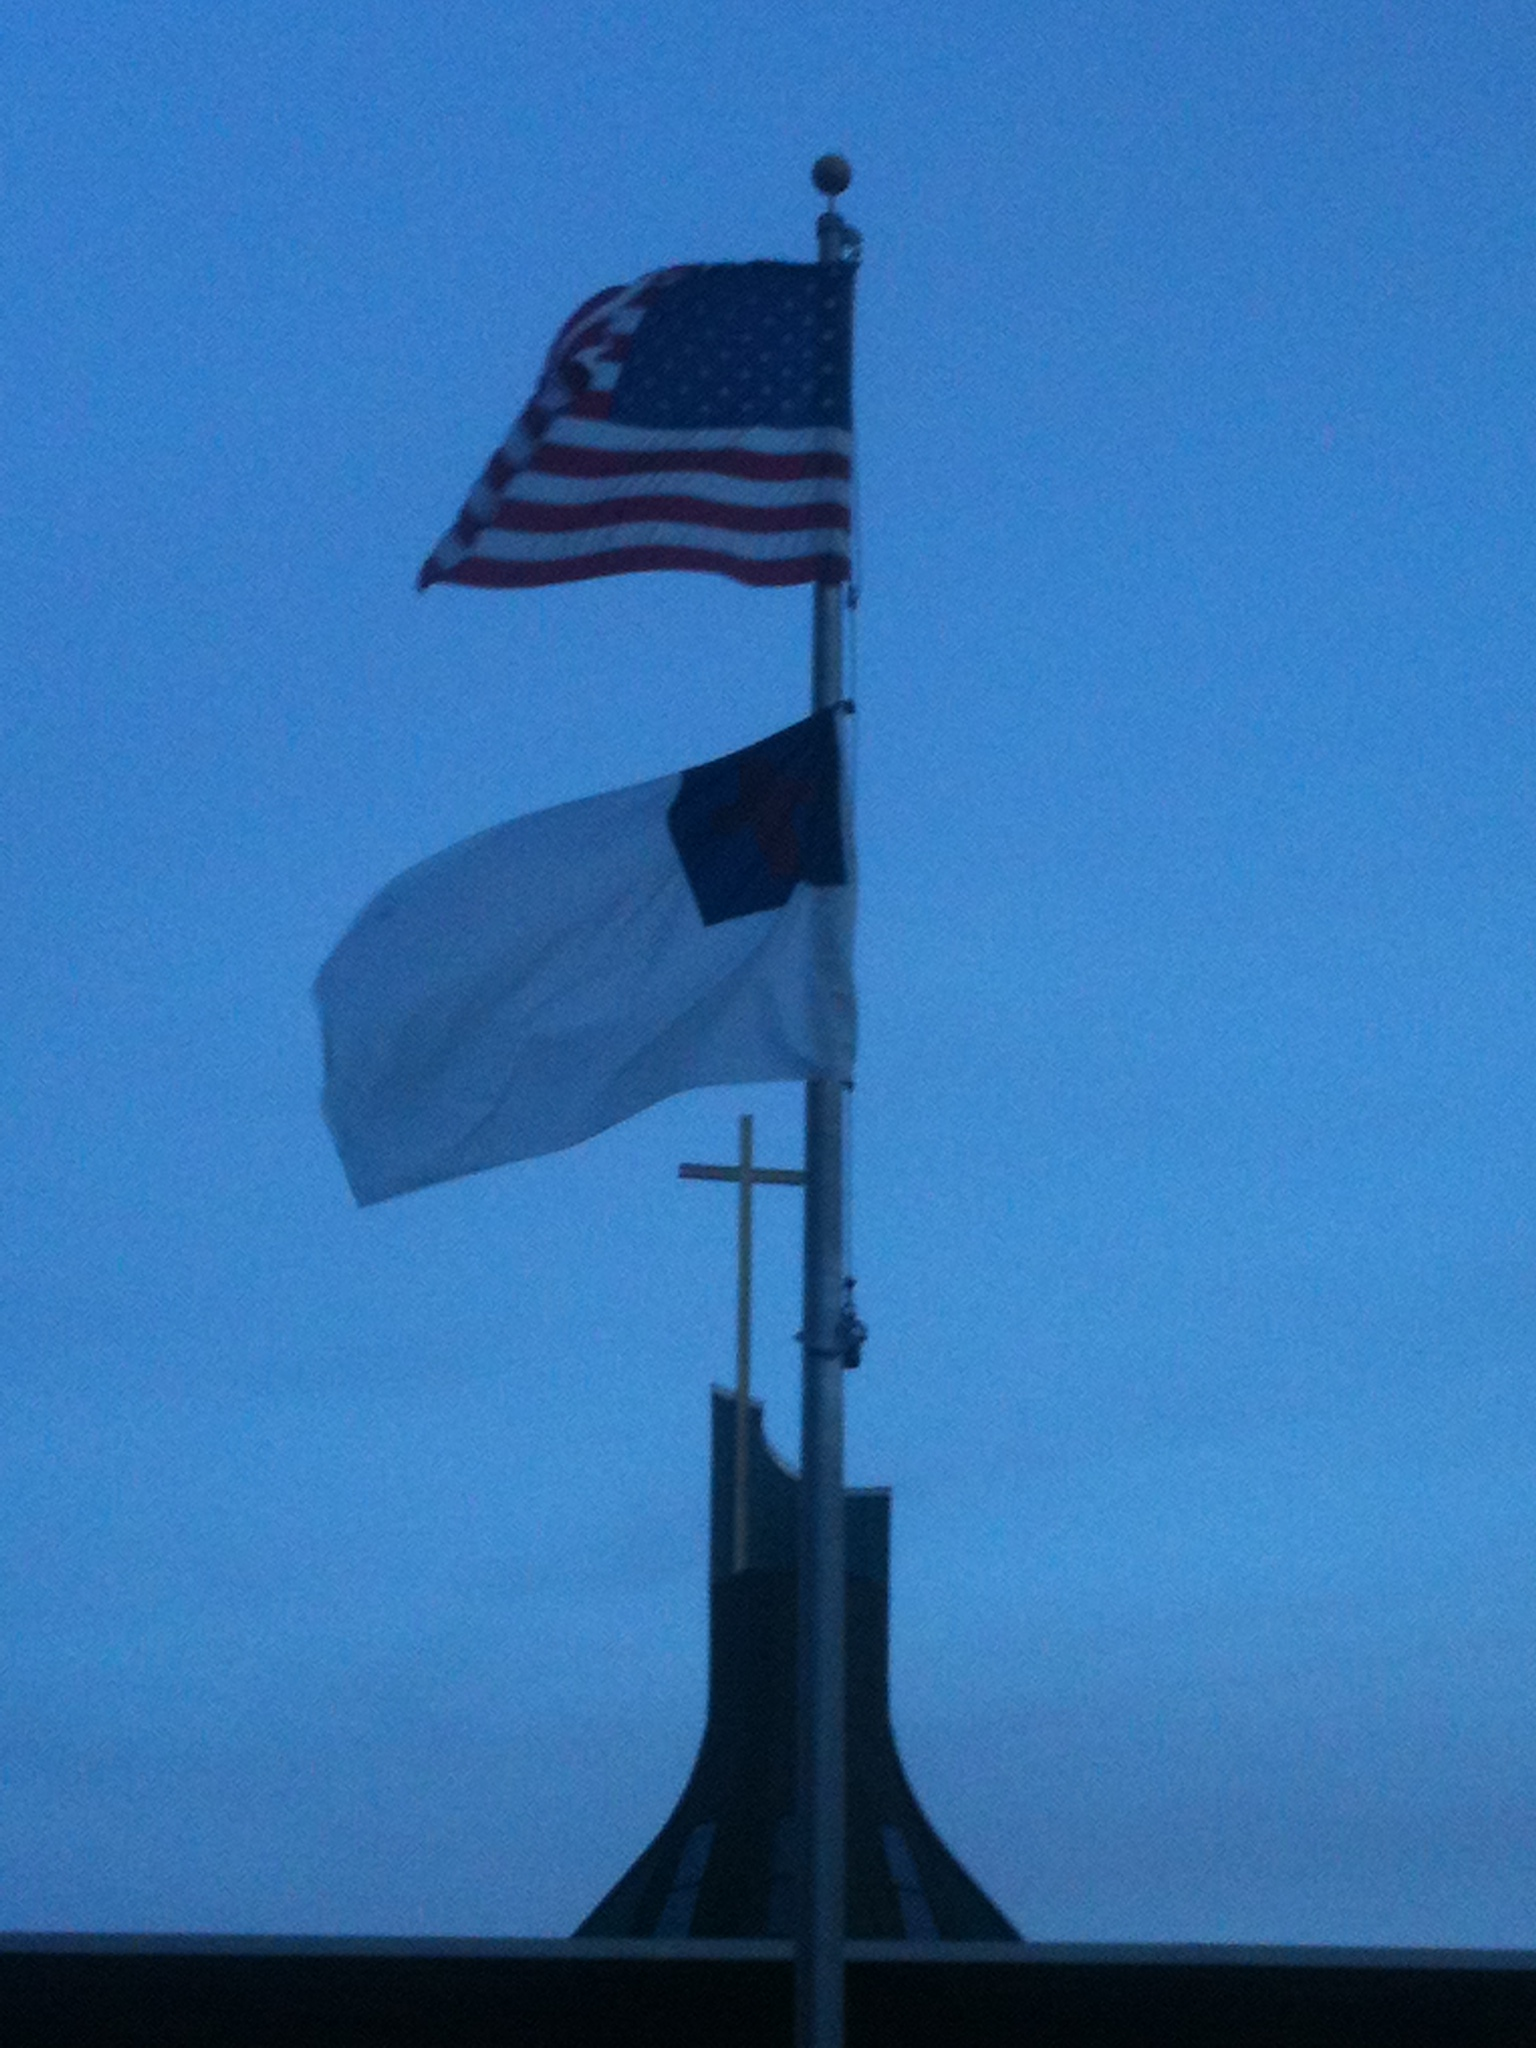 The U.S. Flag flying over the Christian Flag